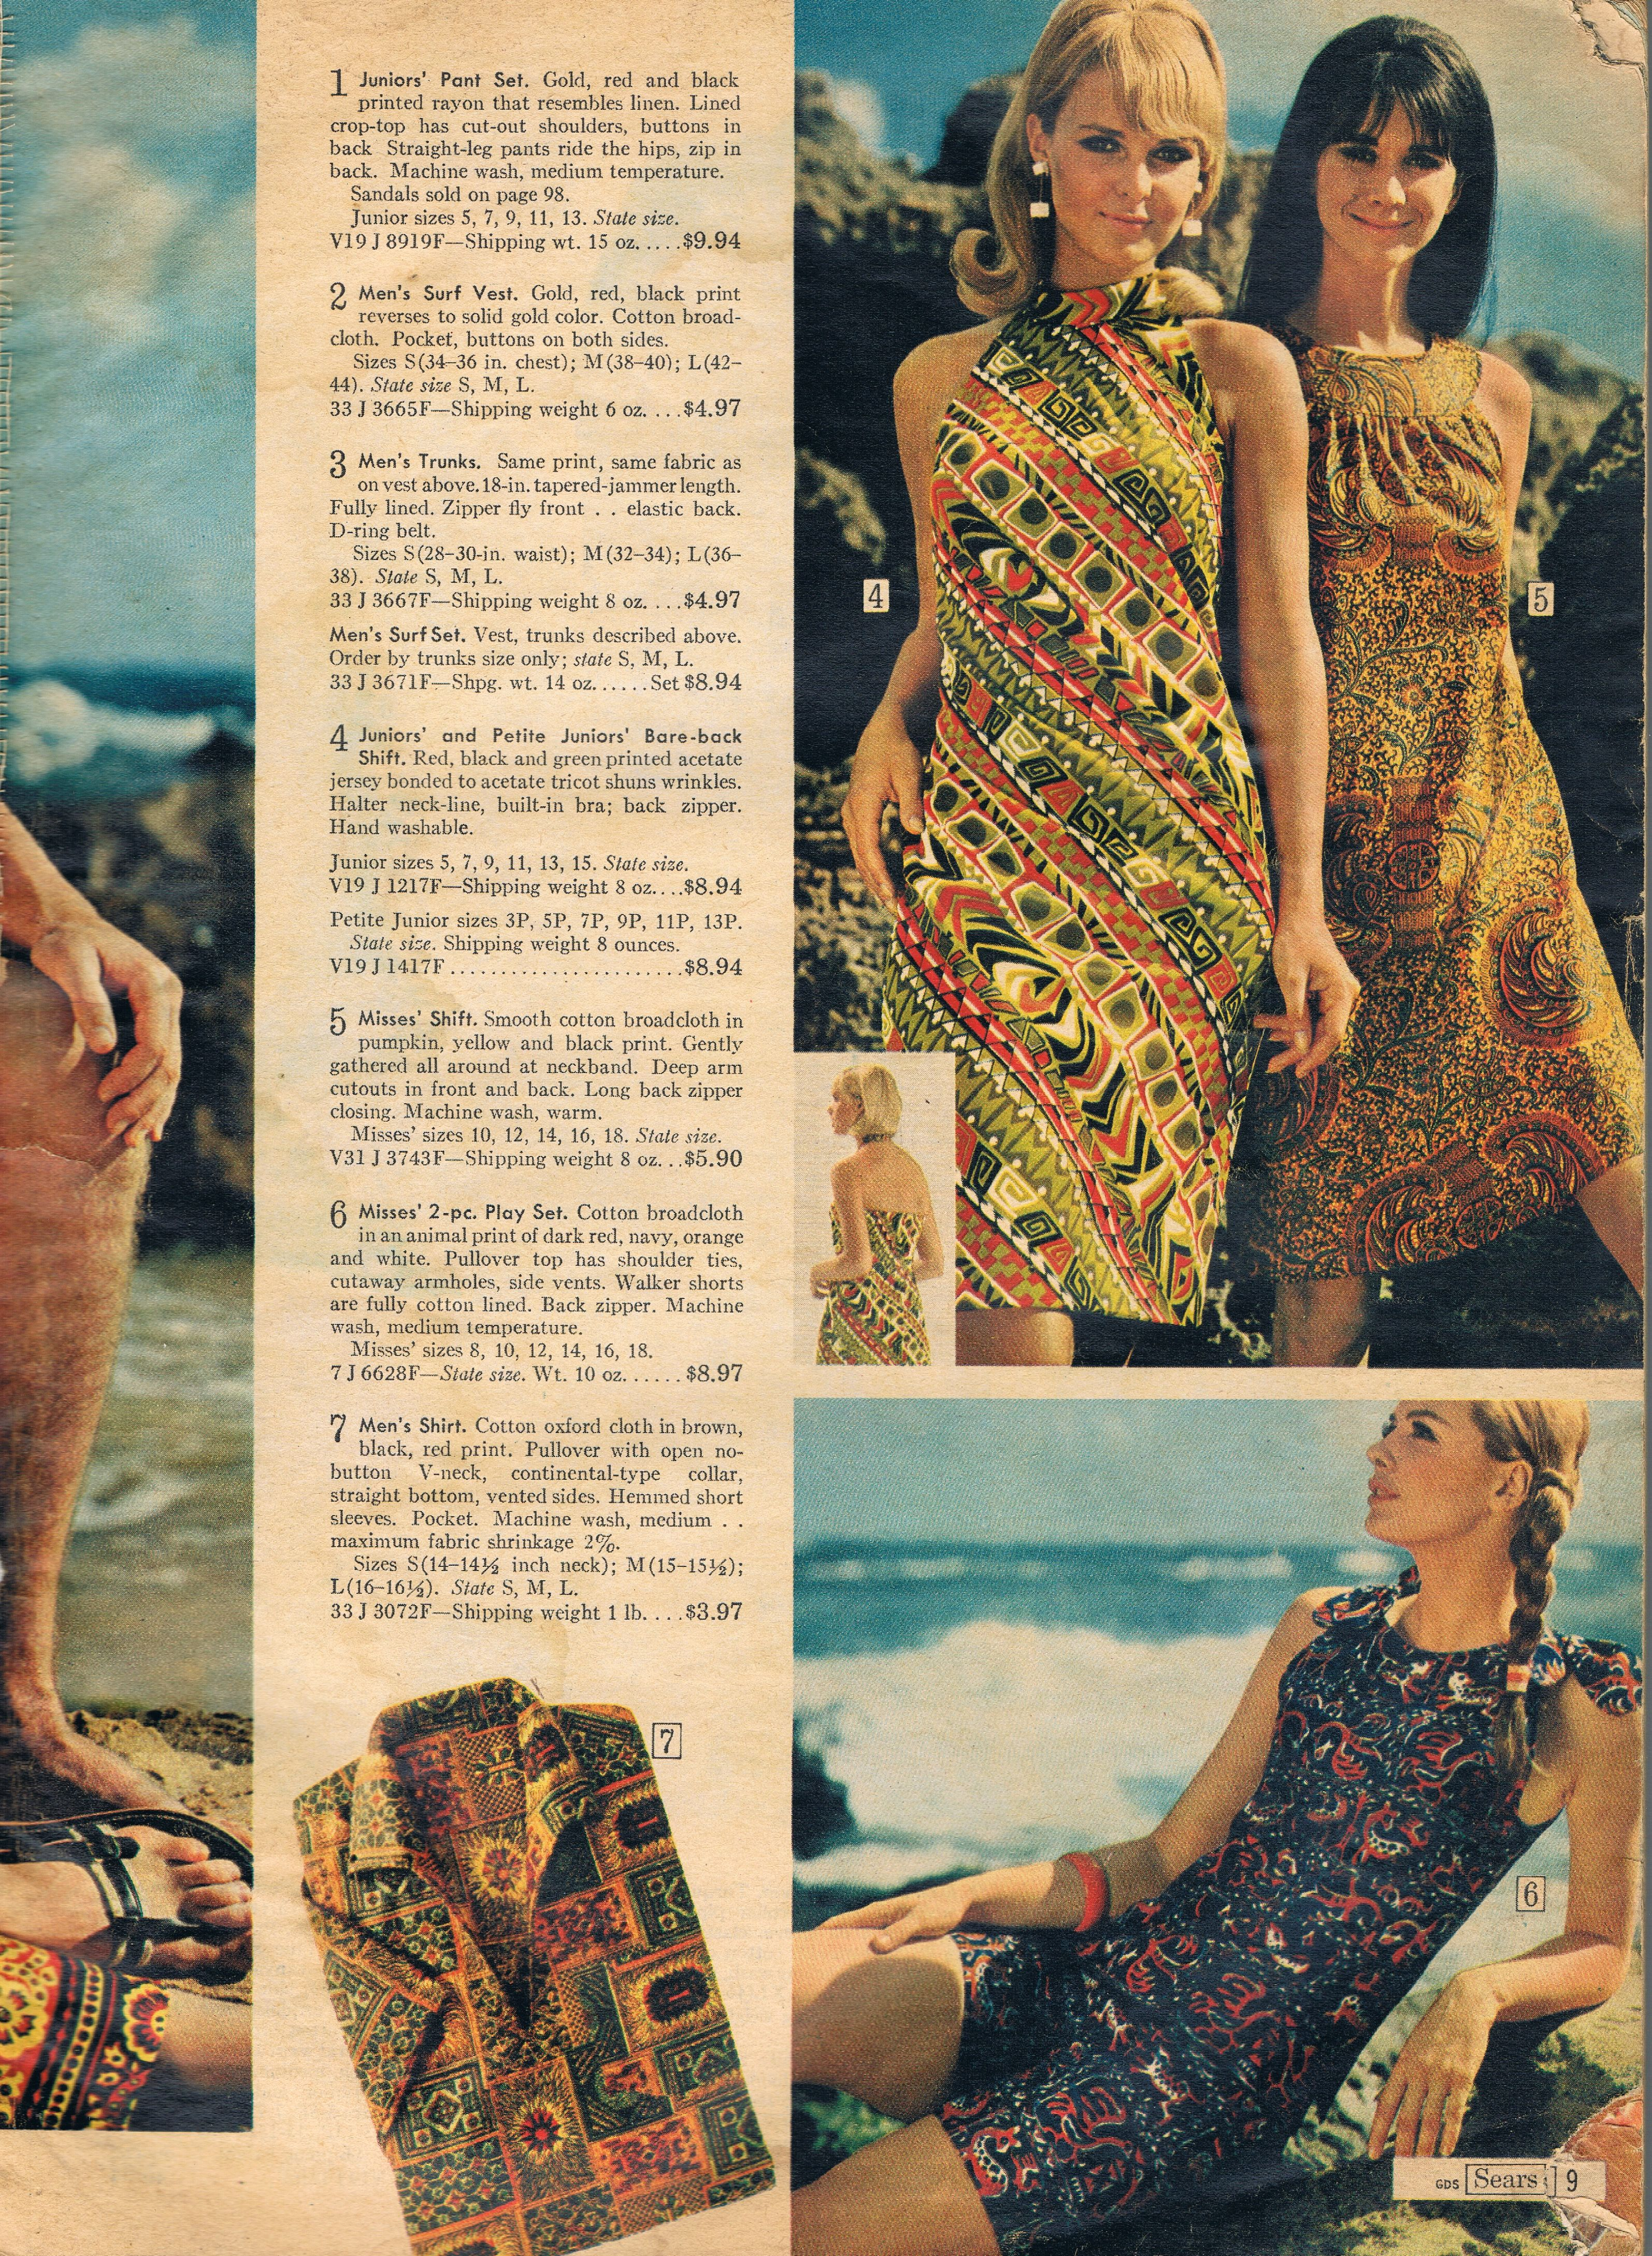 Sears sears pinterest vintage clothing s and s